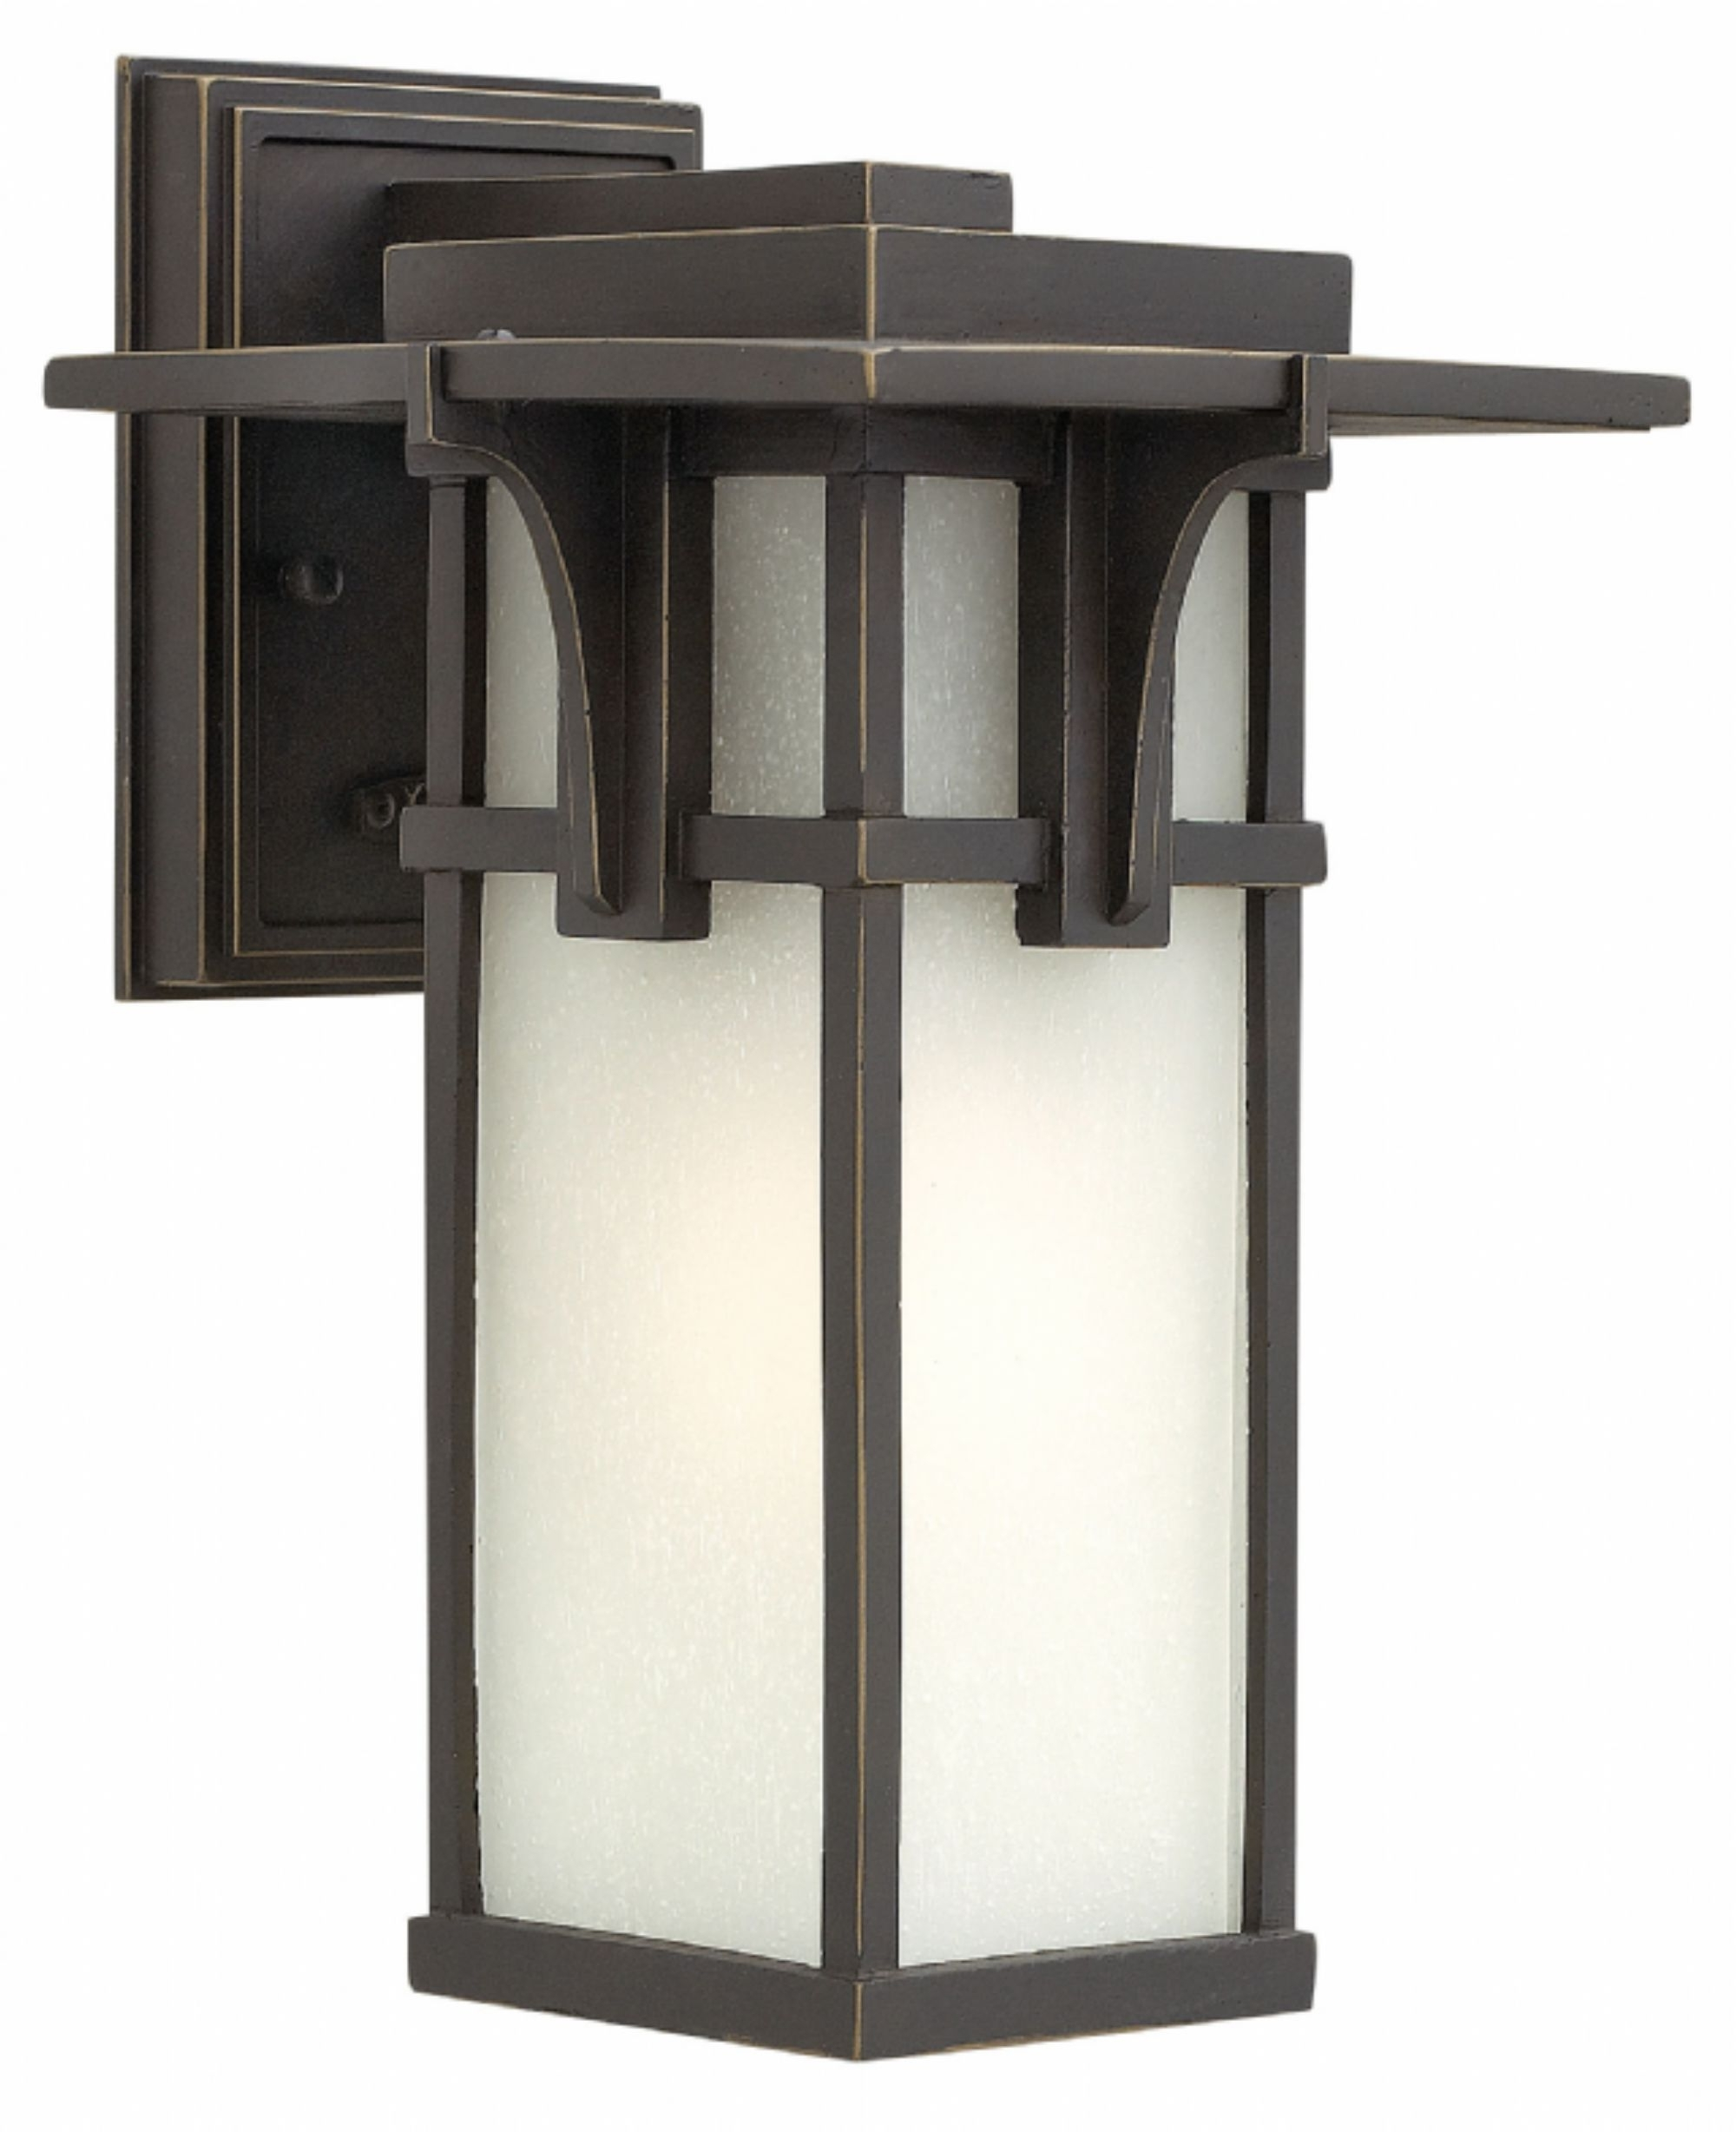 Oil Rubbed Bronze Manhattan > Exterior Wall Mount With Regard To Current Large Outdoor Wall Lanterns (View 17 of 20)